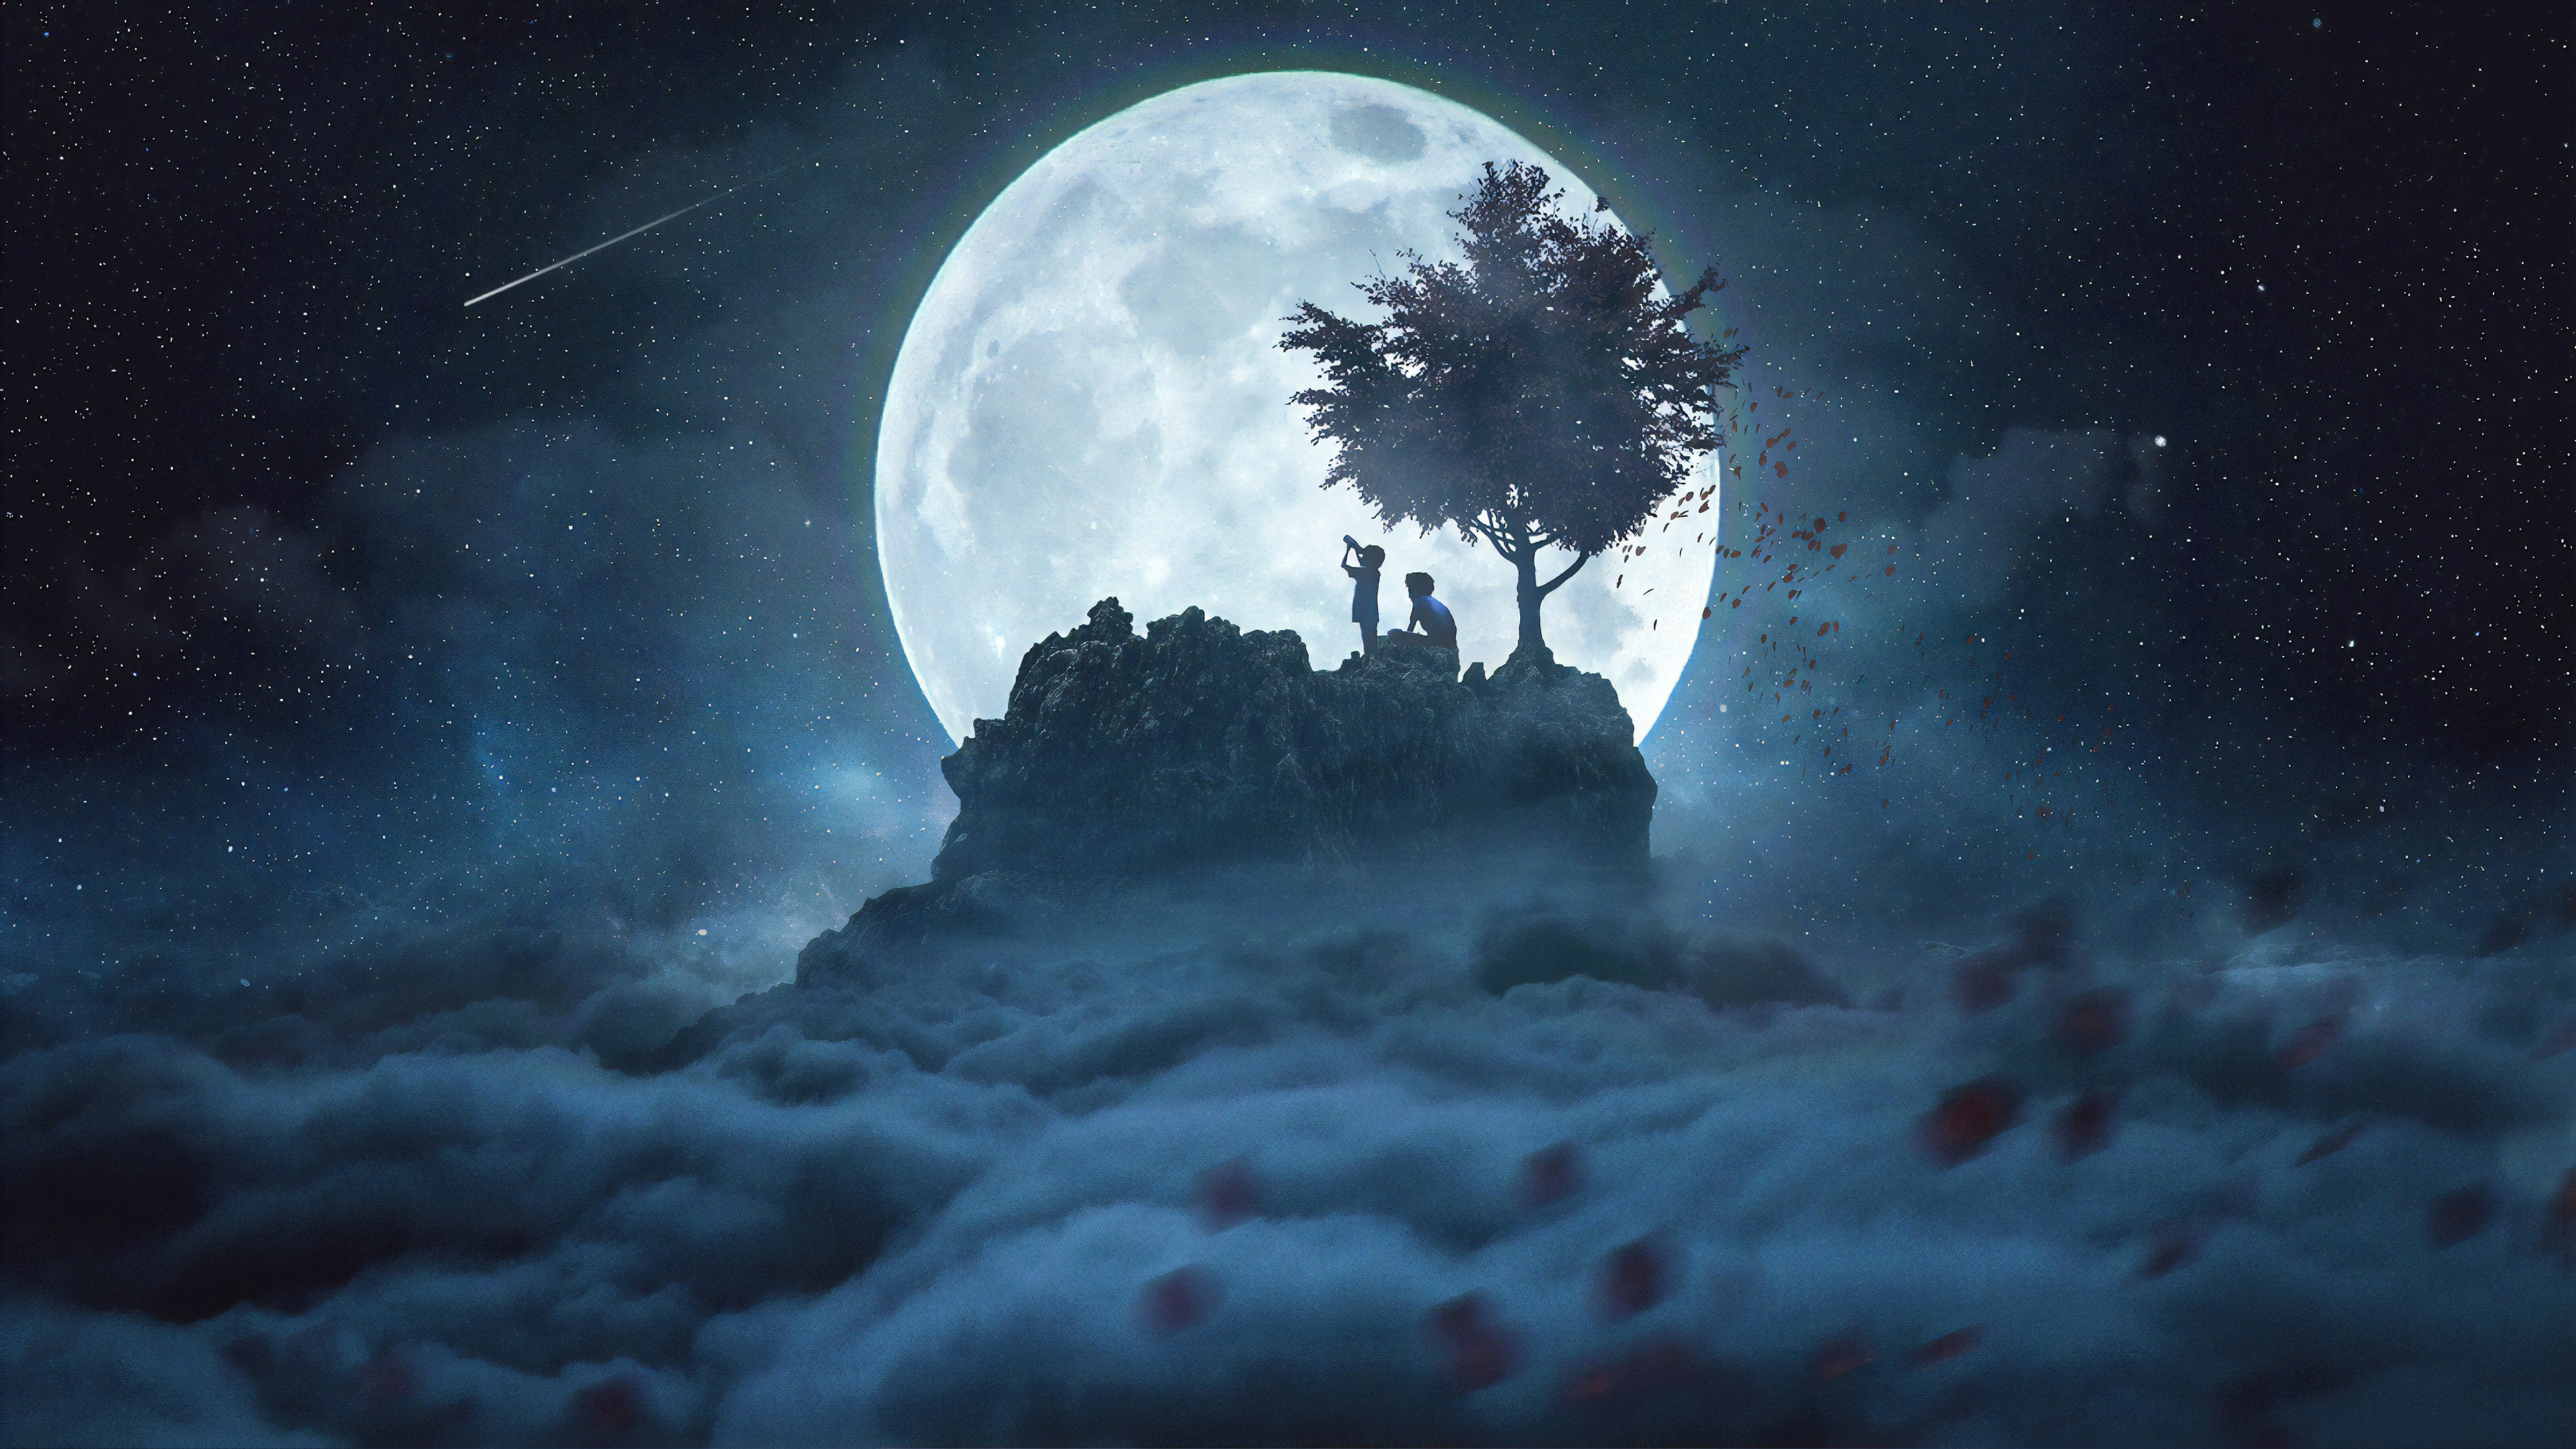 General 3840x2160 digital digital art artwork fantasy art concept art environment children people silhouette night stars starry night landscape sky skyscape Moon moon rays moonlight illustration Photoshop photomontage photo manipulation clouds comet astronomy trees shooting stars